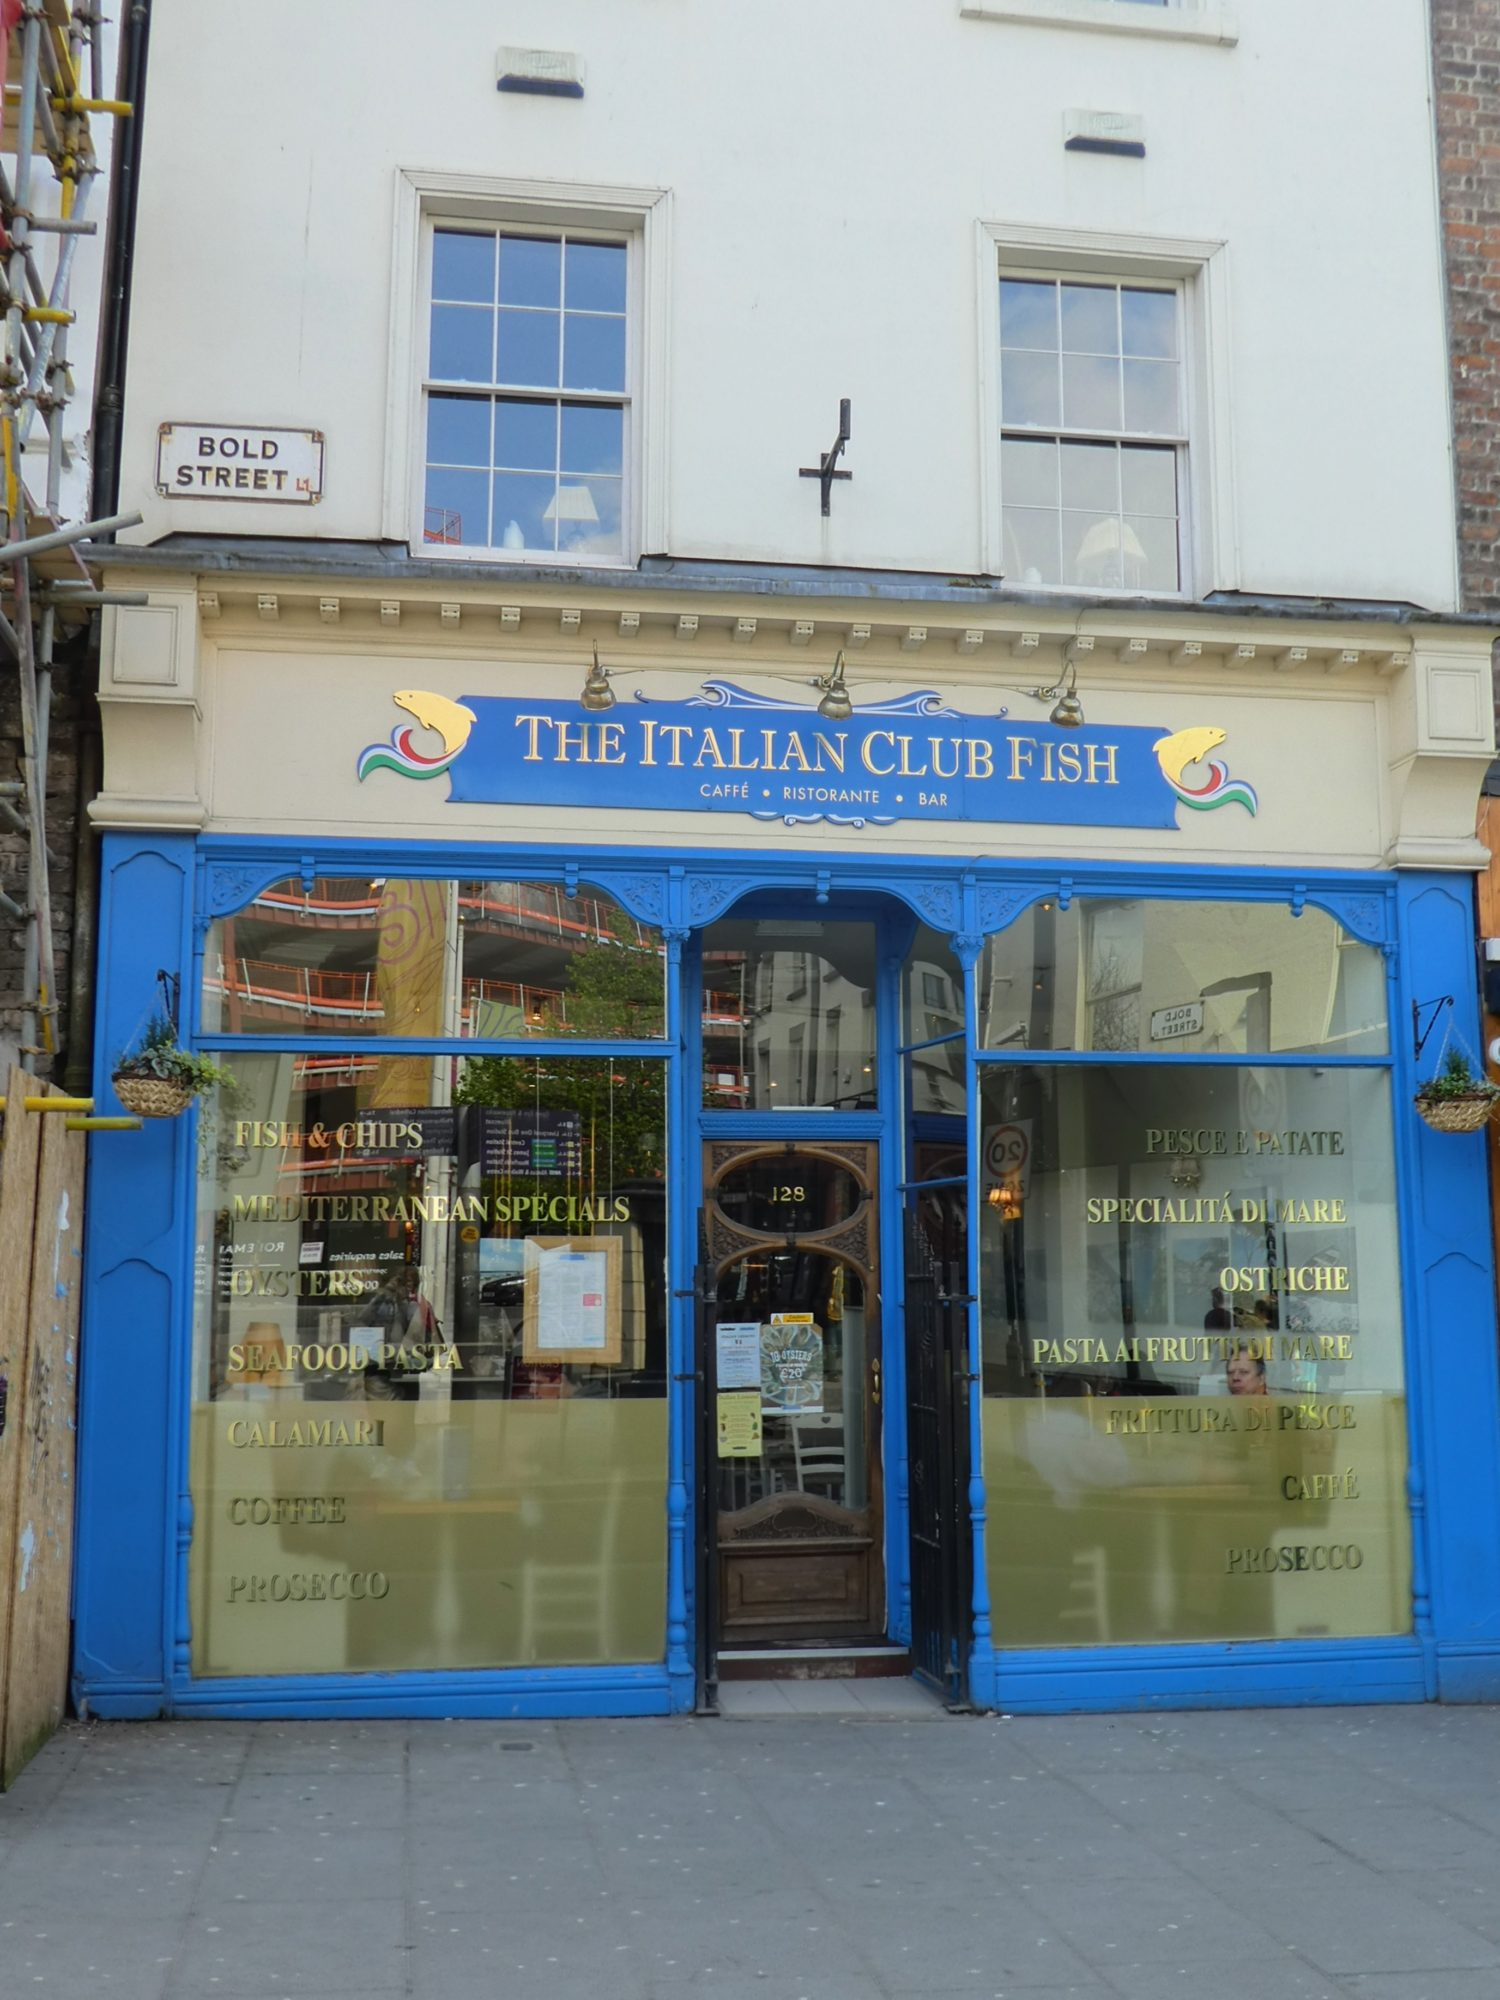 Eating Gluten Free at The Italian Club Fish | Eating Gluten Free in Liverpool | Restaurant Exterior